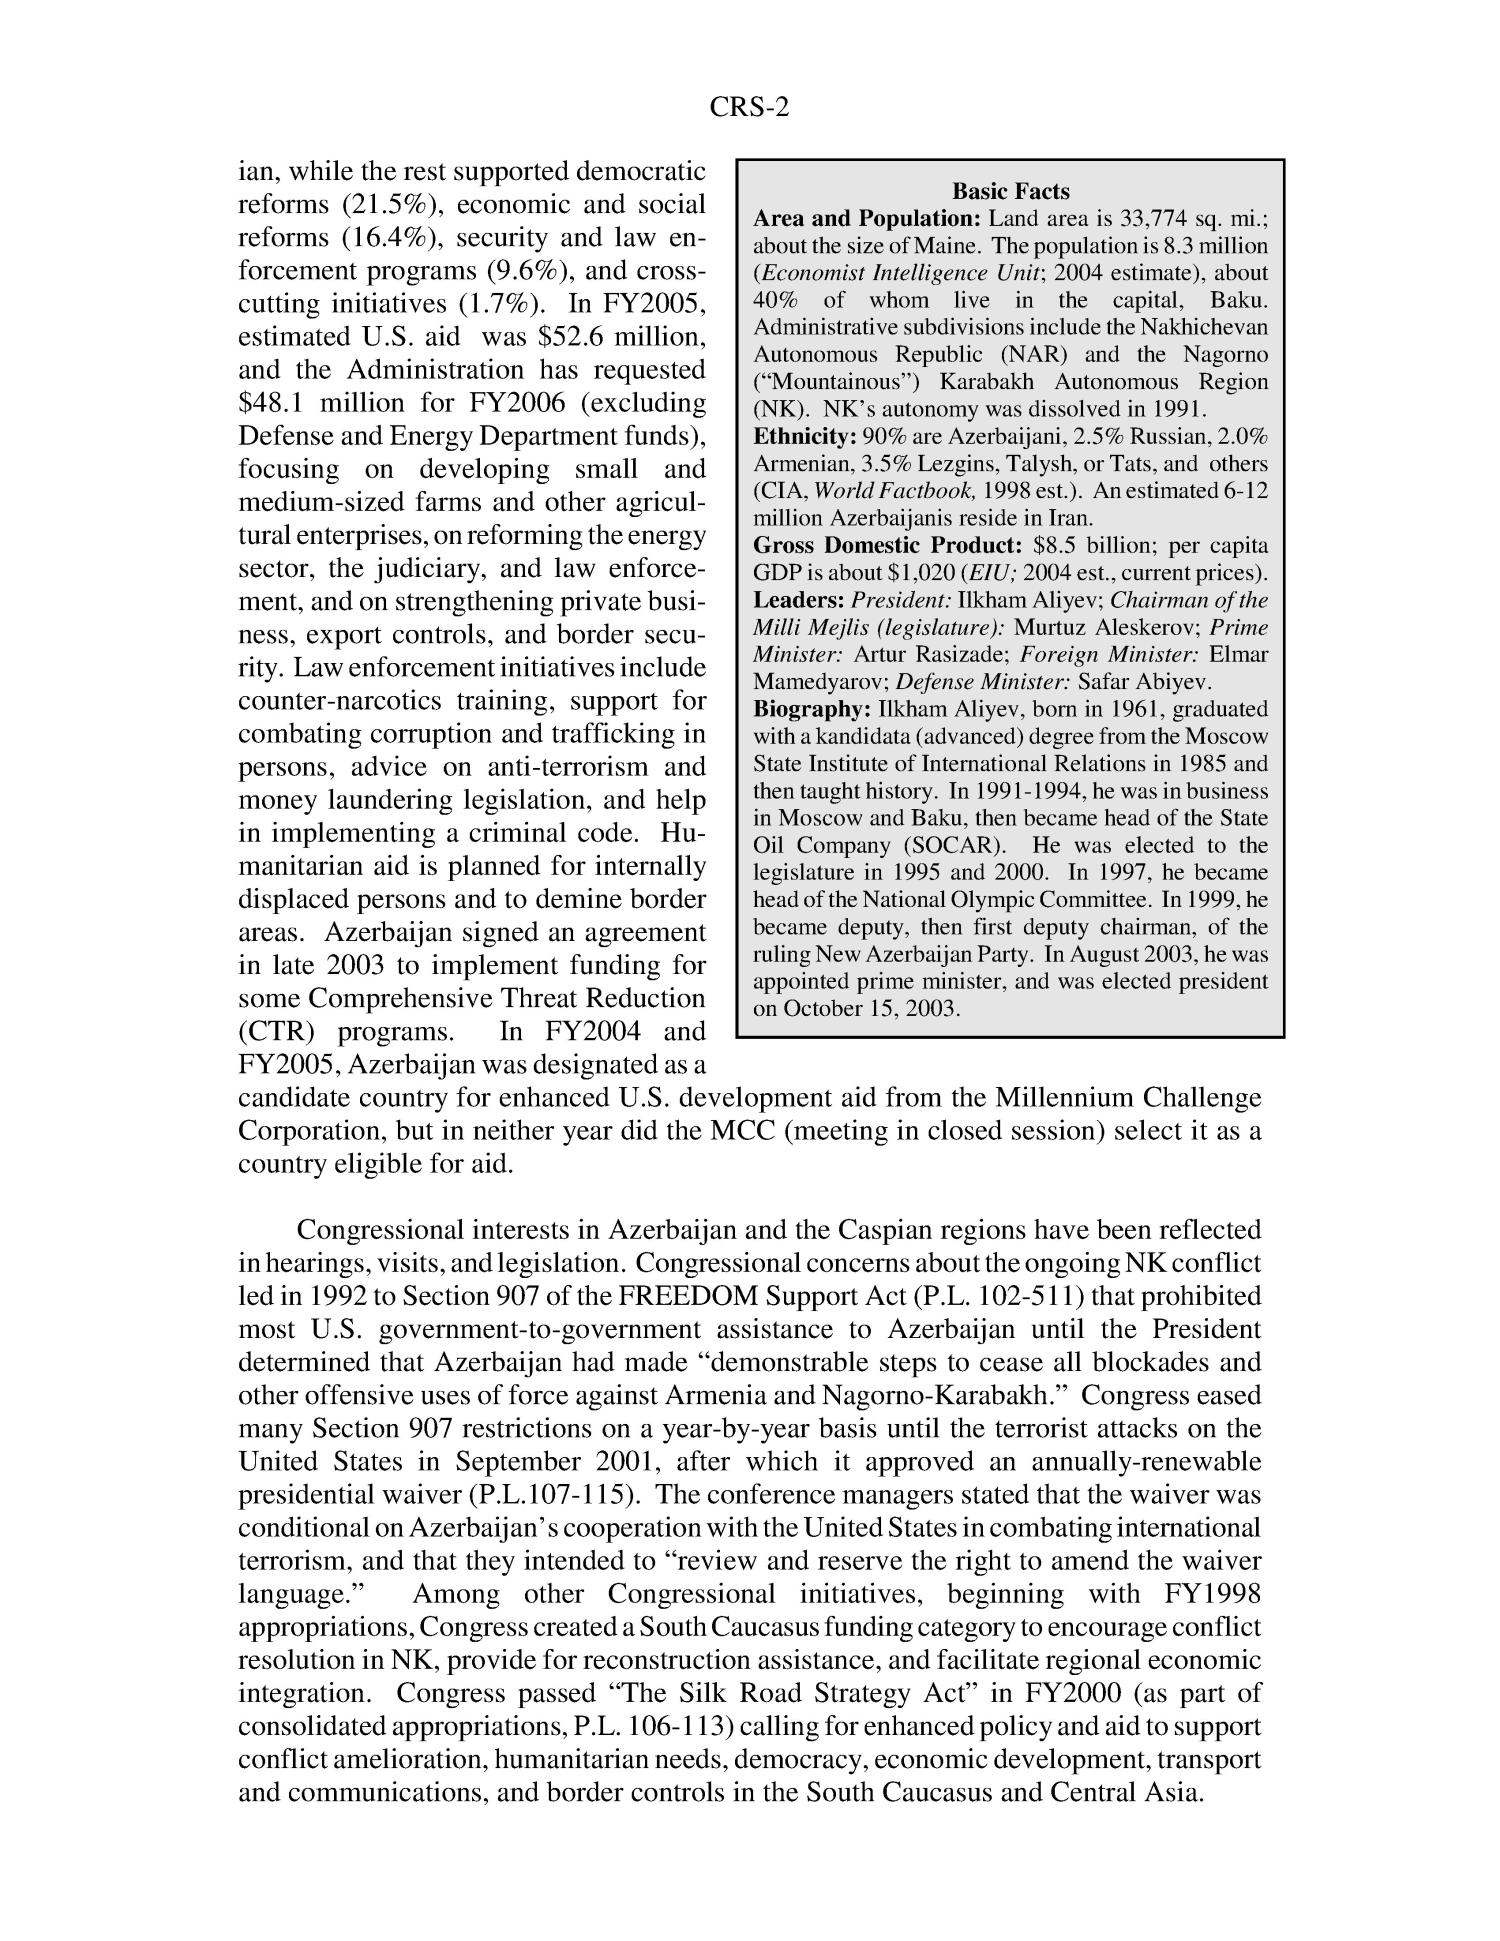 Azerbaijan: Recent Developments and U.S. Interests                                                                                                      [Sequence #]: 2 of 6